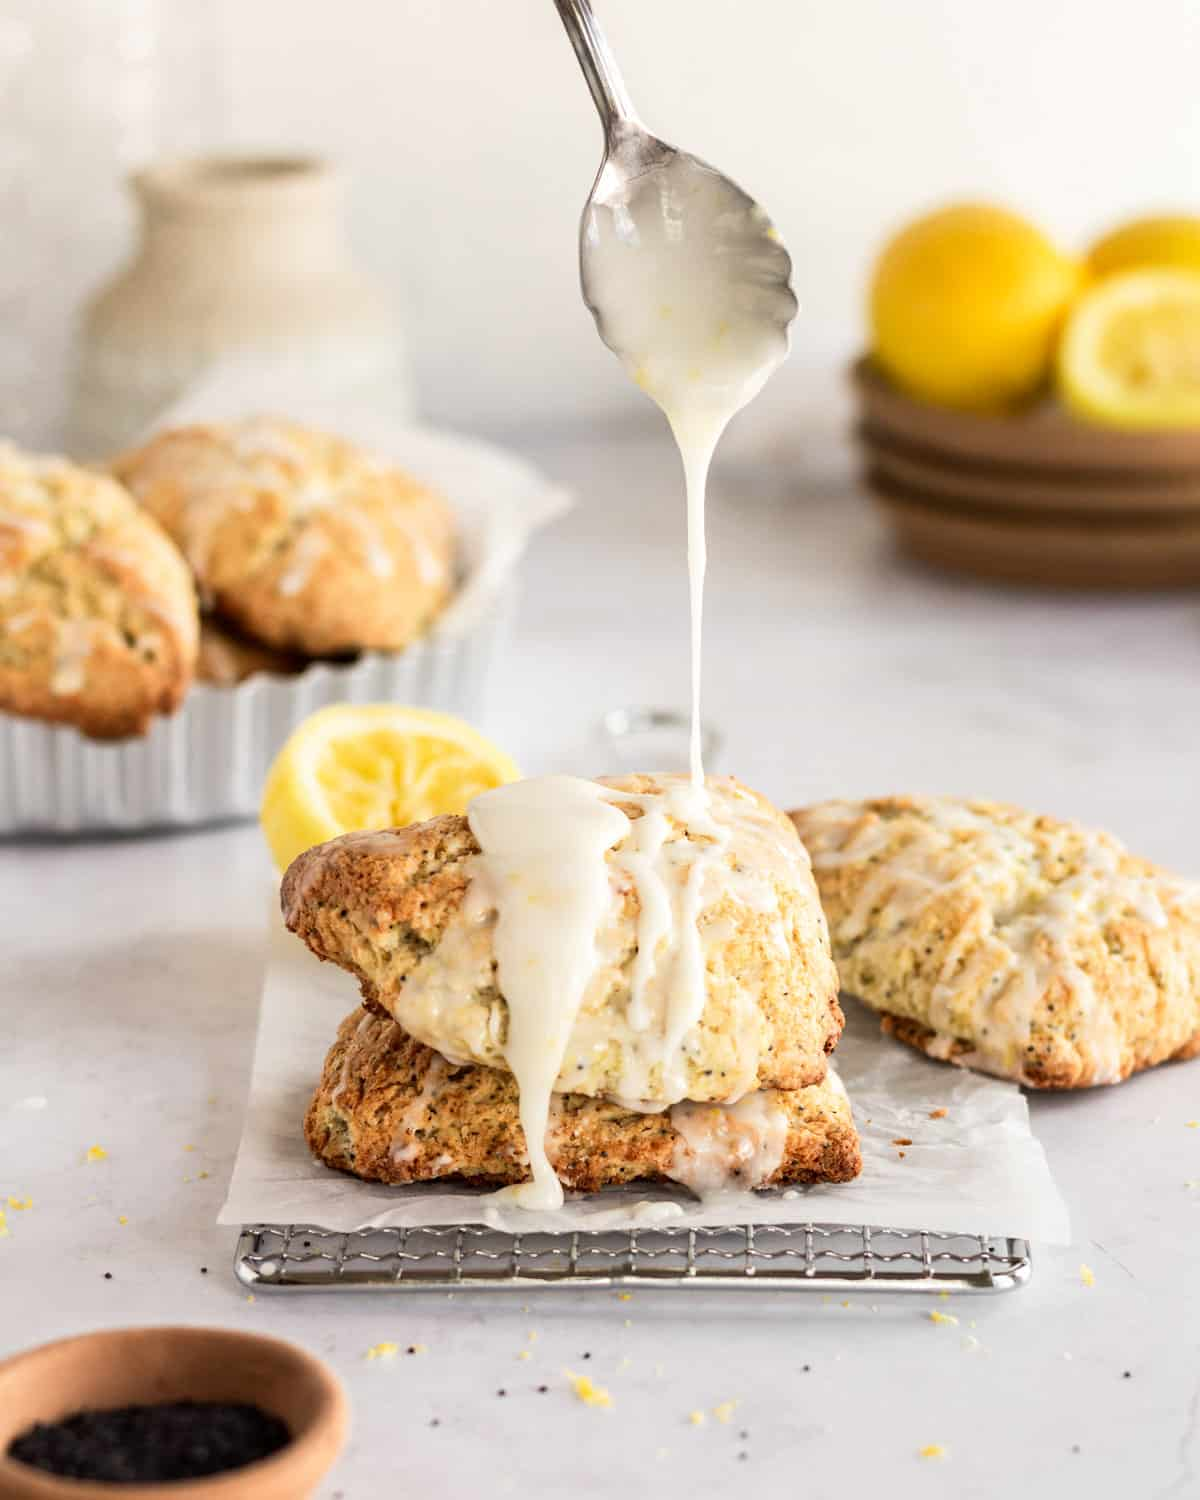 stack of scones with spoon over top drizzling lemon glaze onto scones. In the background there is a bowl of scones and a plate full of lemons.